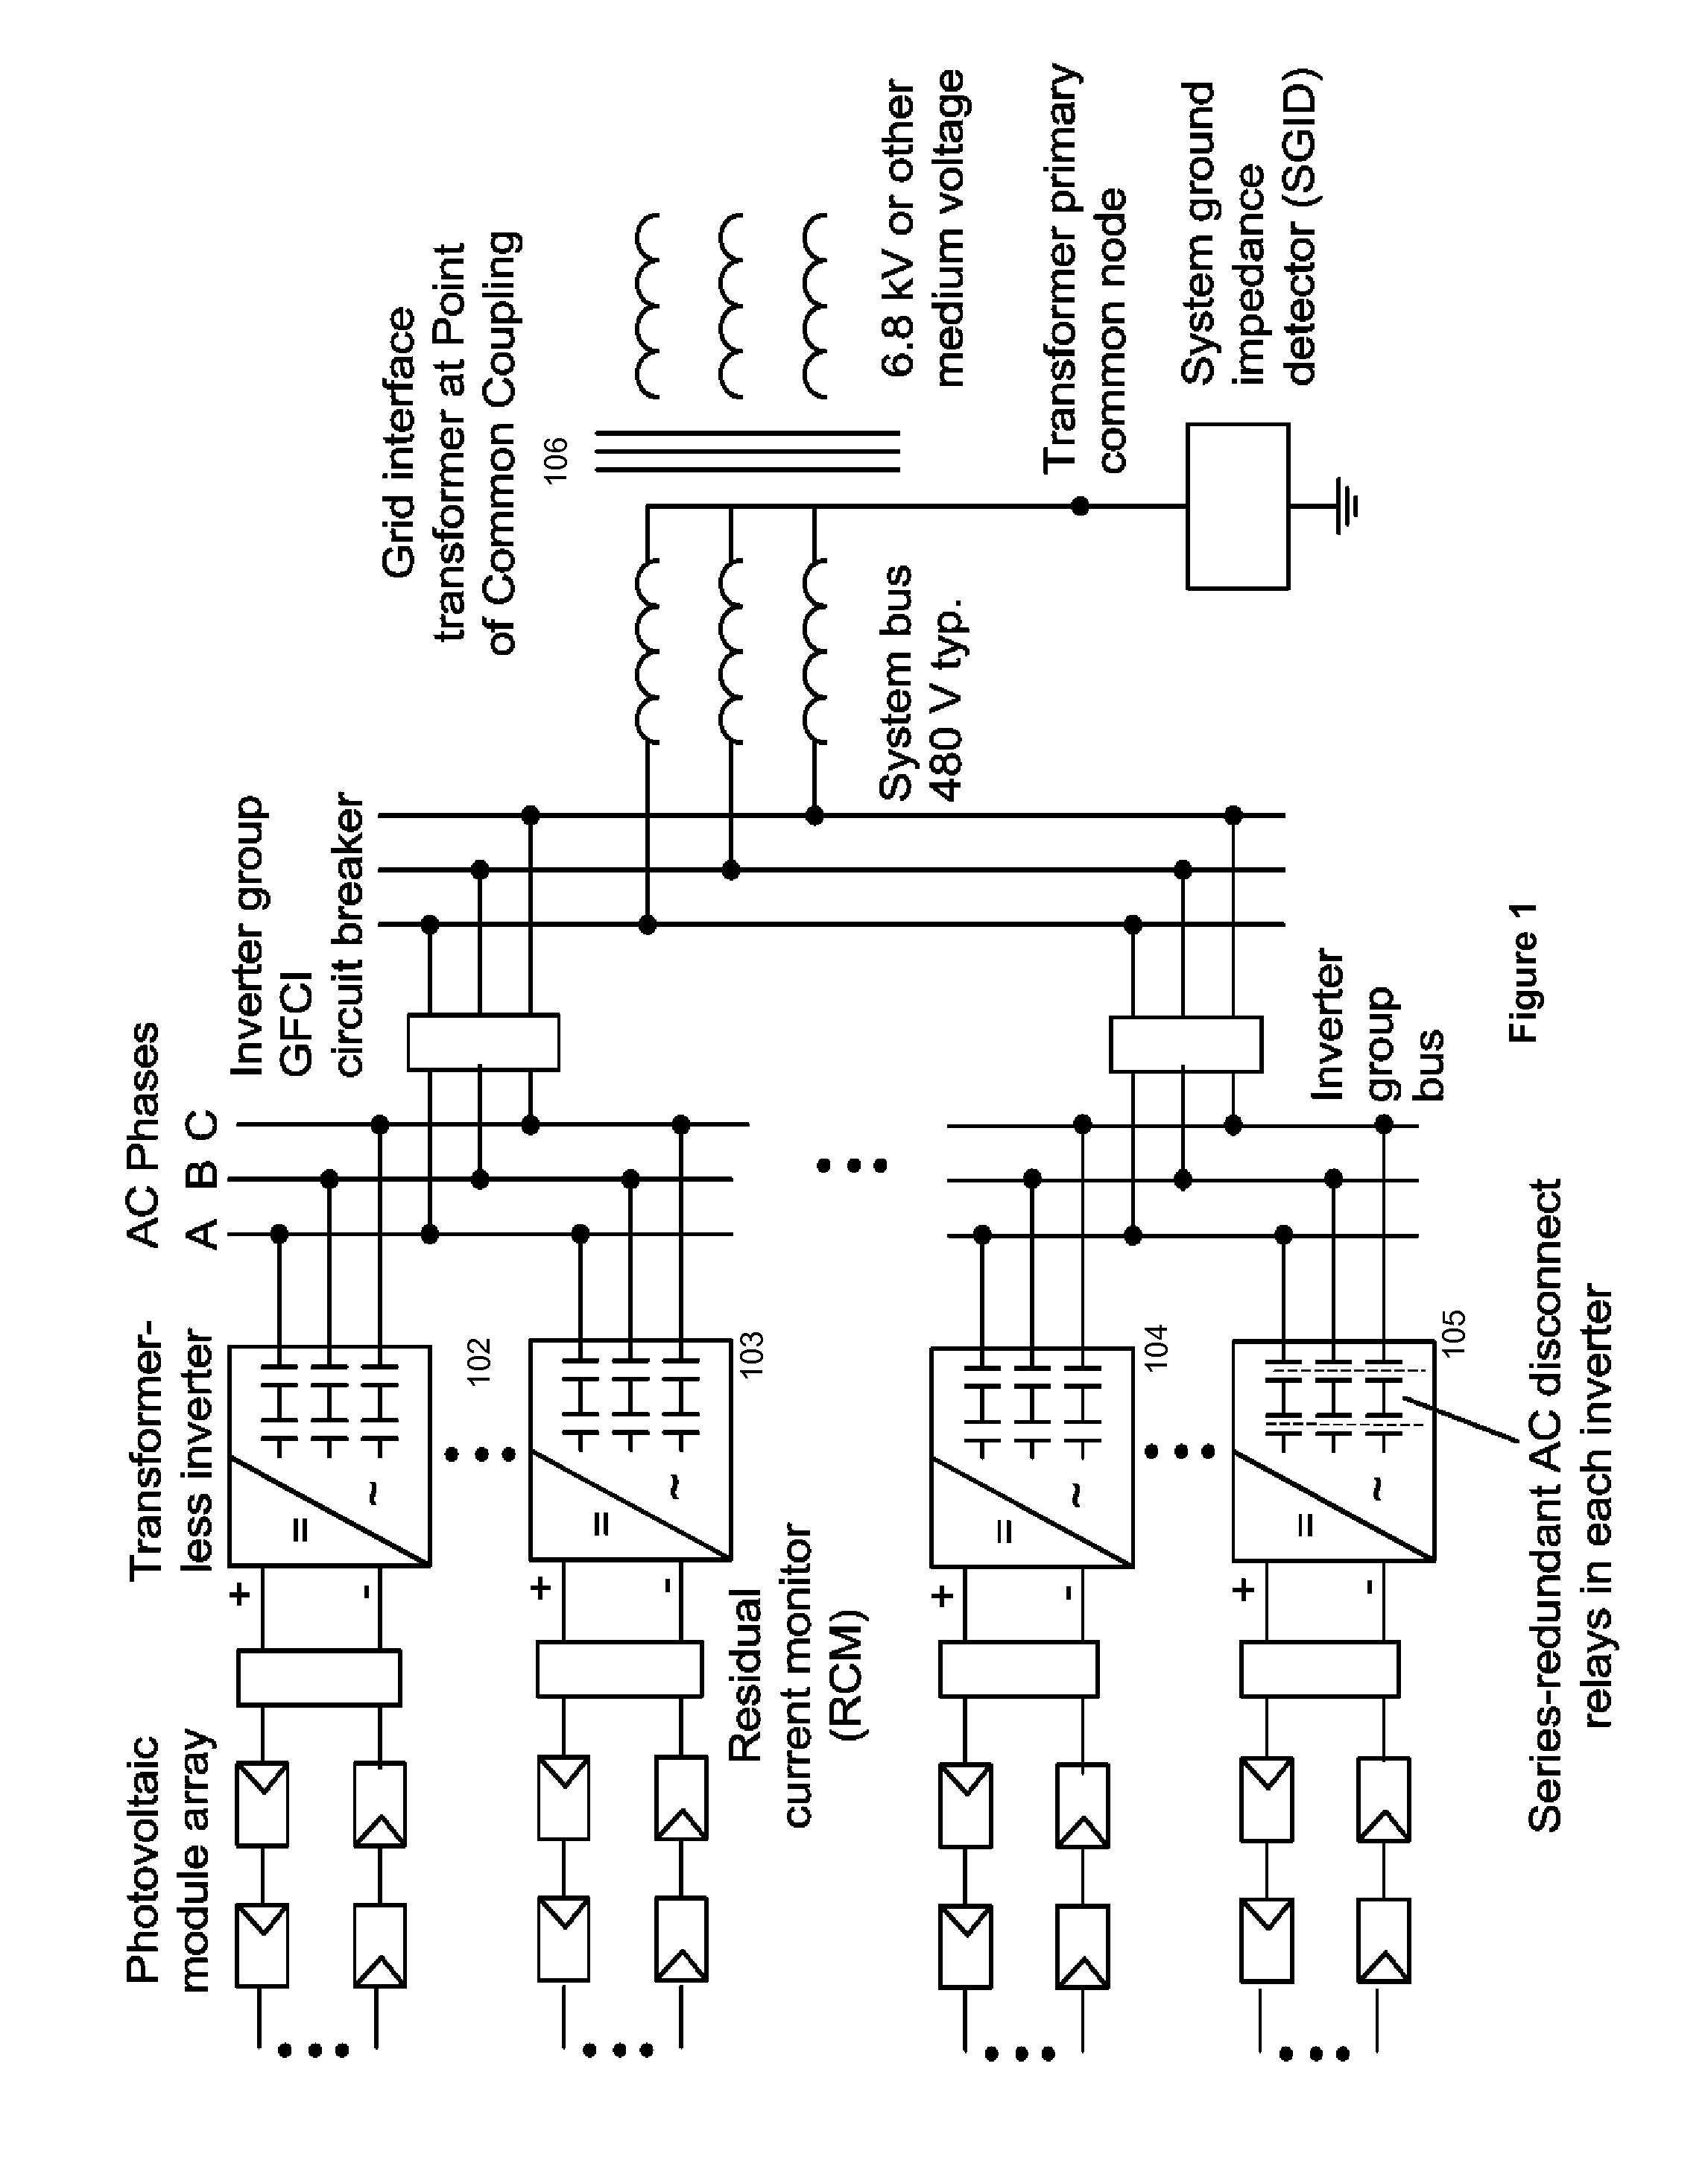 earth fault loop impedance diagram meyer truck lite wiring patent us20120026631 photovoltaic array ground